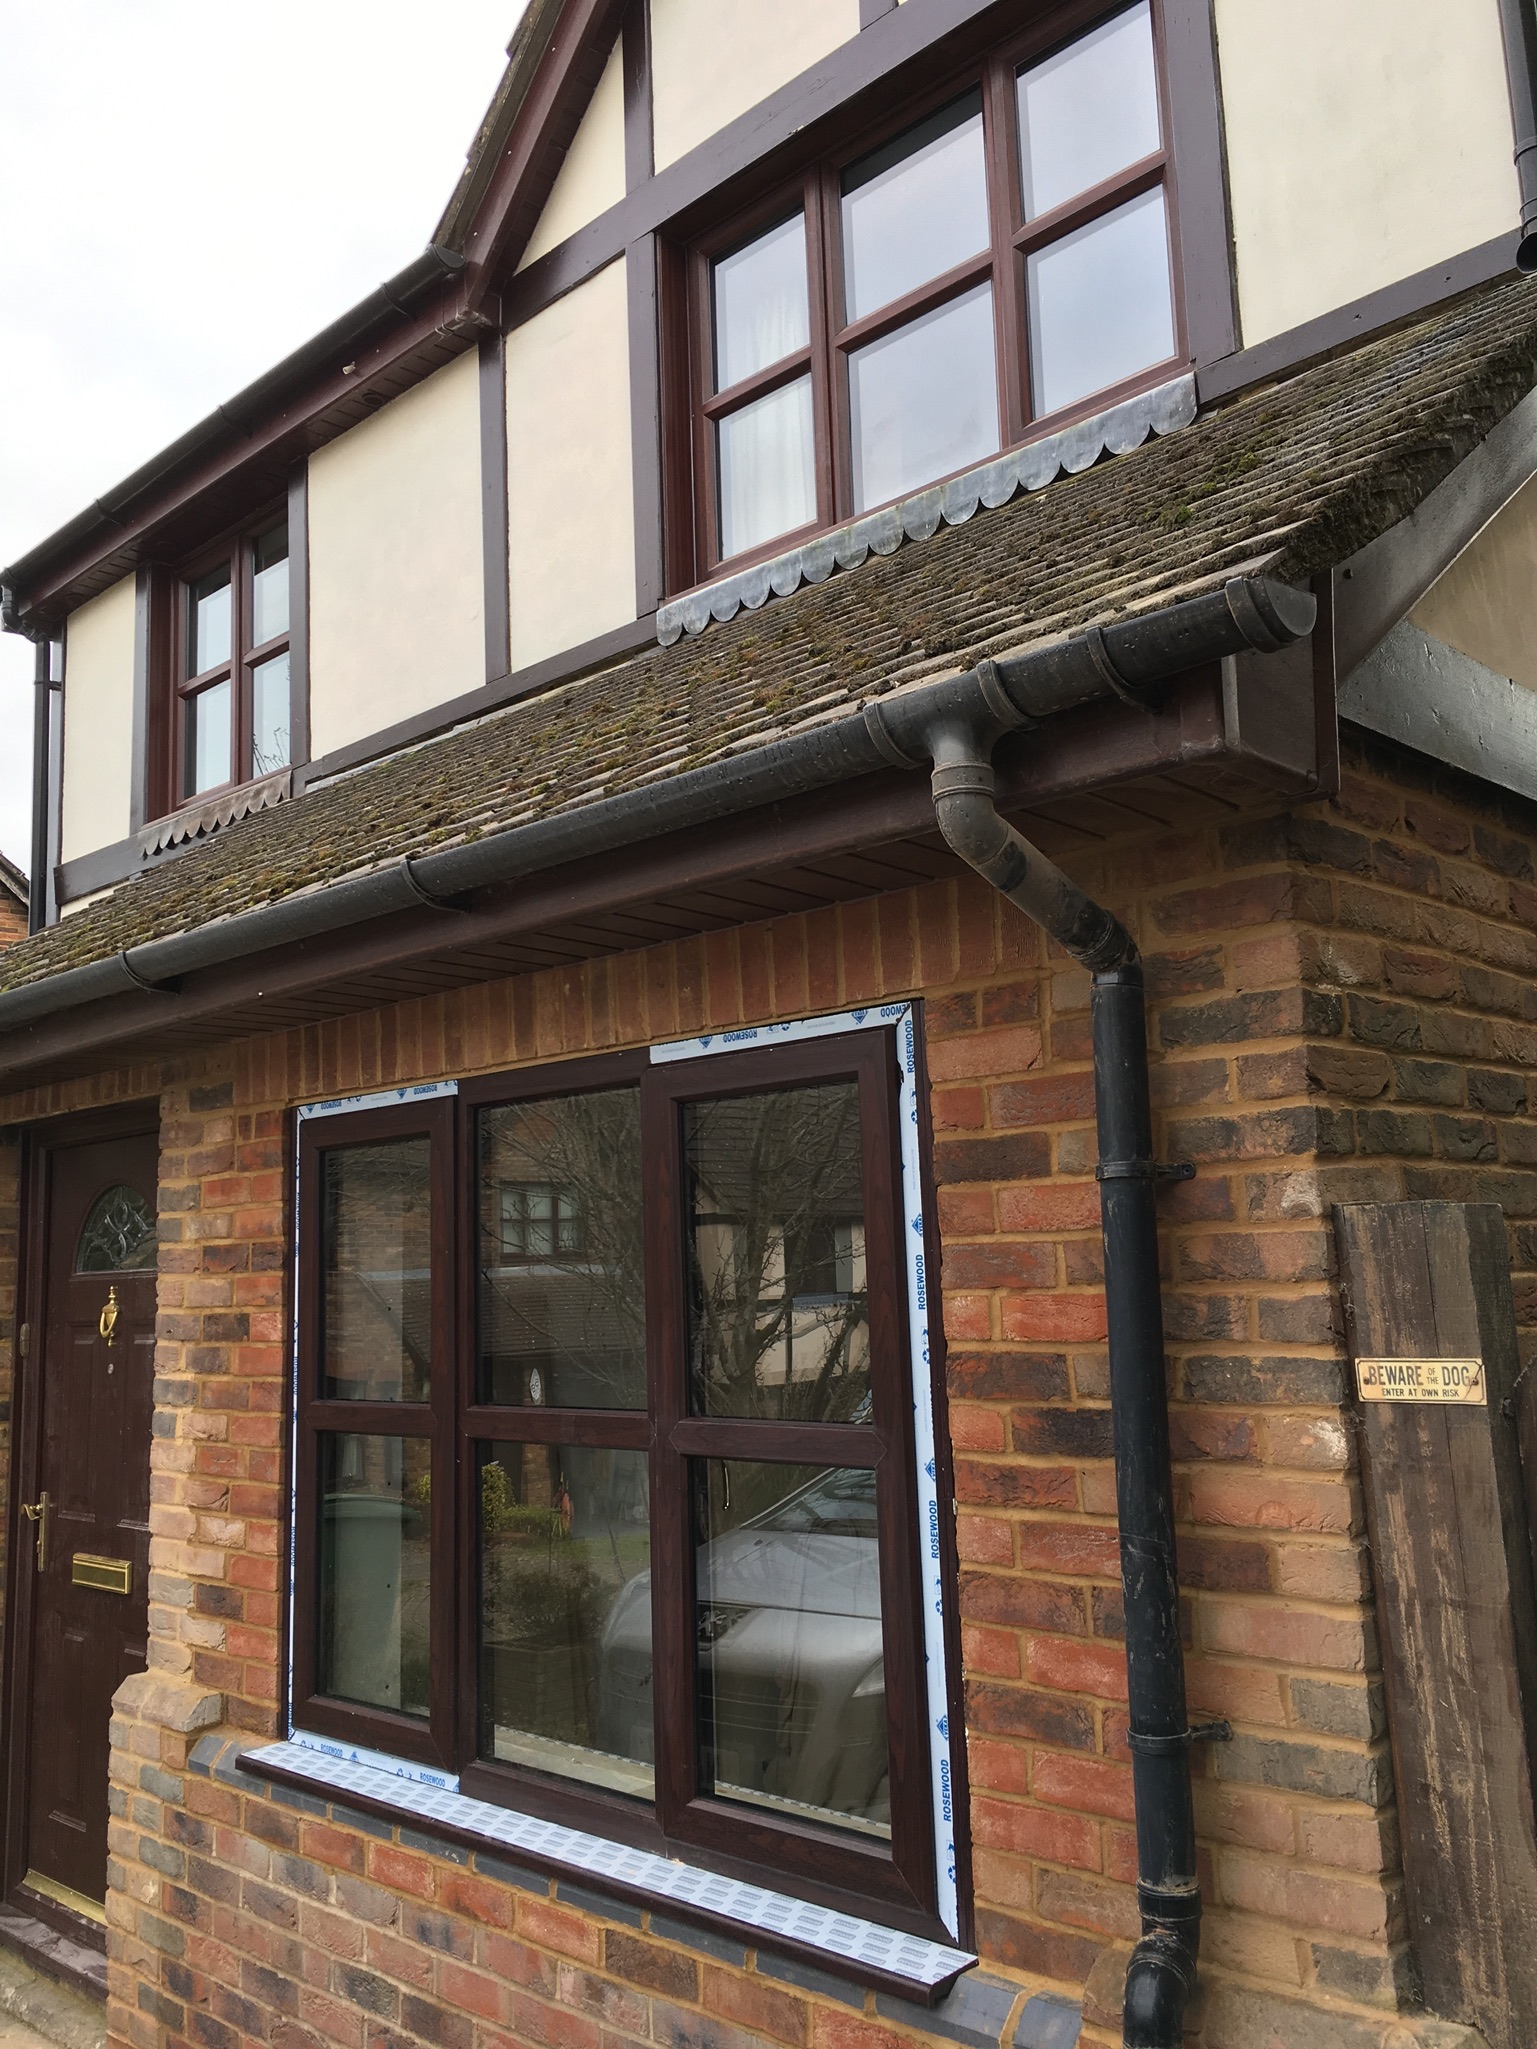 garage conversion, recommended tradesman, RECOMMENDED BUILDER, GARAGE CONVERSION,, trusted trade, trusted plumber, trusted electrician, trusted builder, trusted plasterer, recommended plasterer, recommended builder, recommended bricklayer, carpenter, trusted carpenter, 321 GARAGE CONVERSION, GARAGE CONVERSION QUOTE